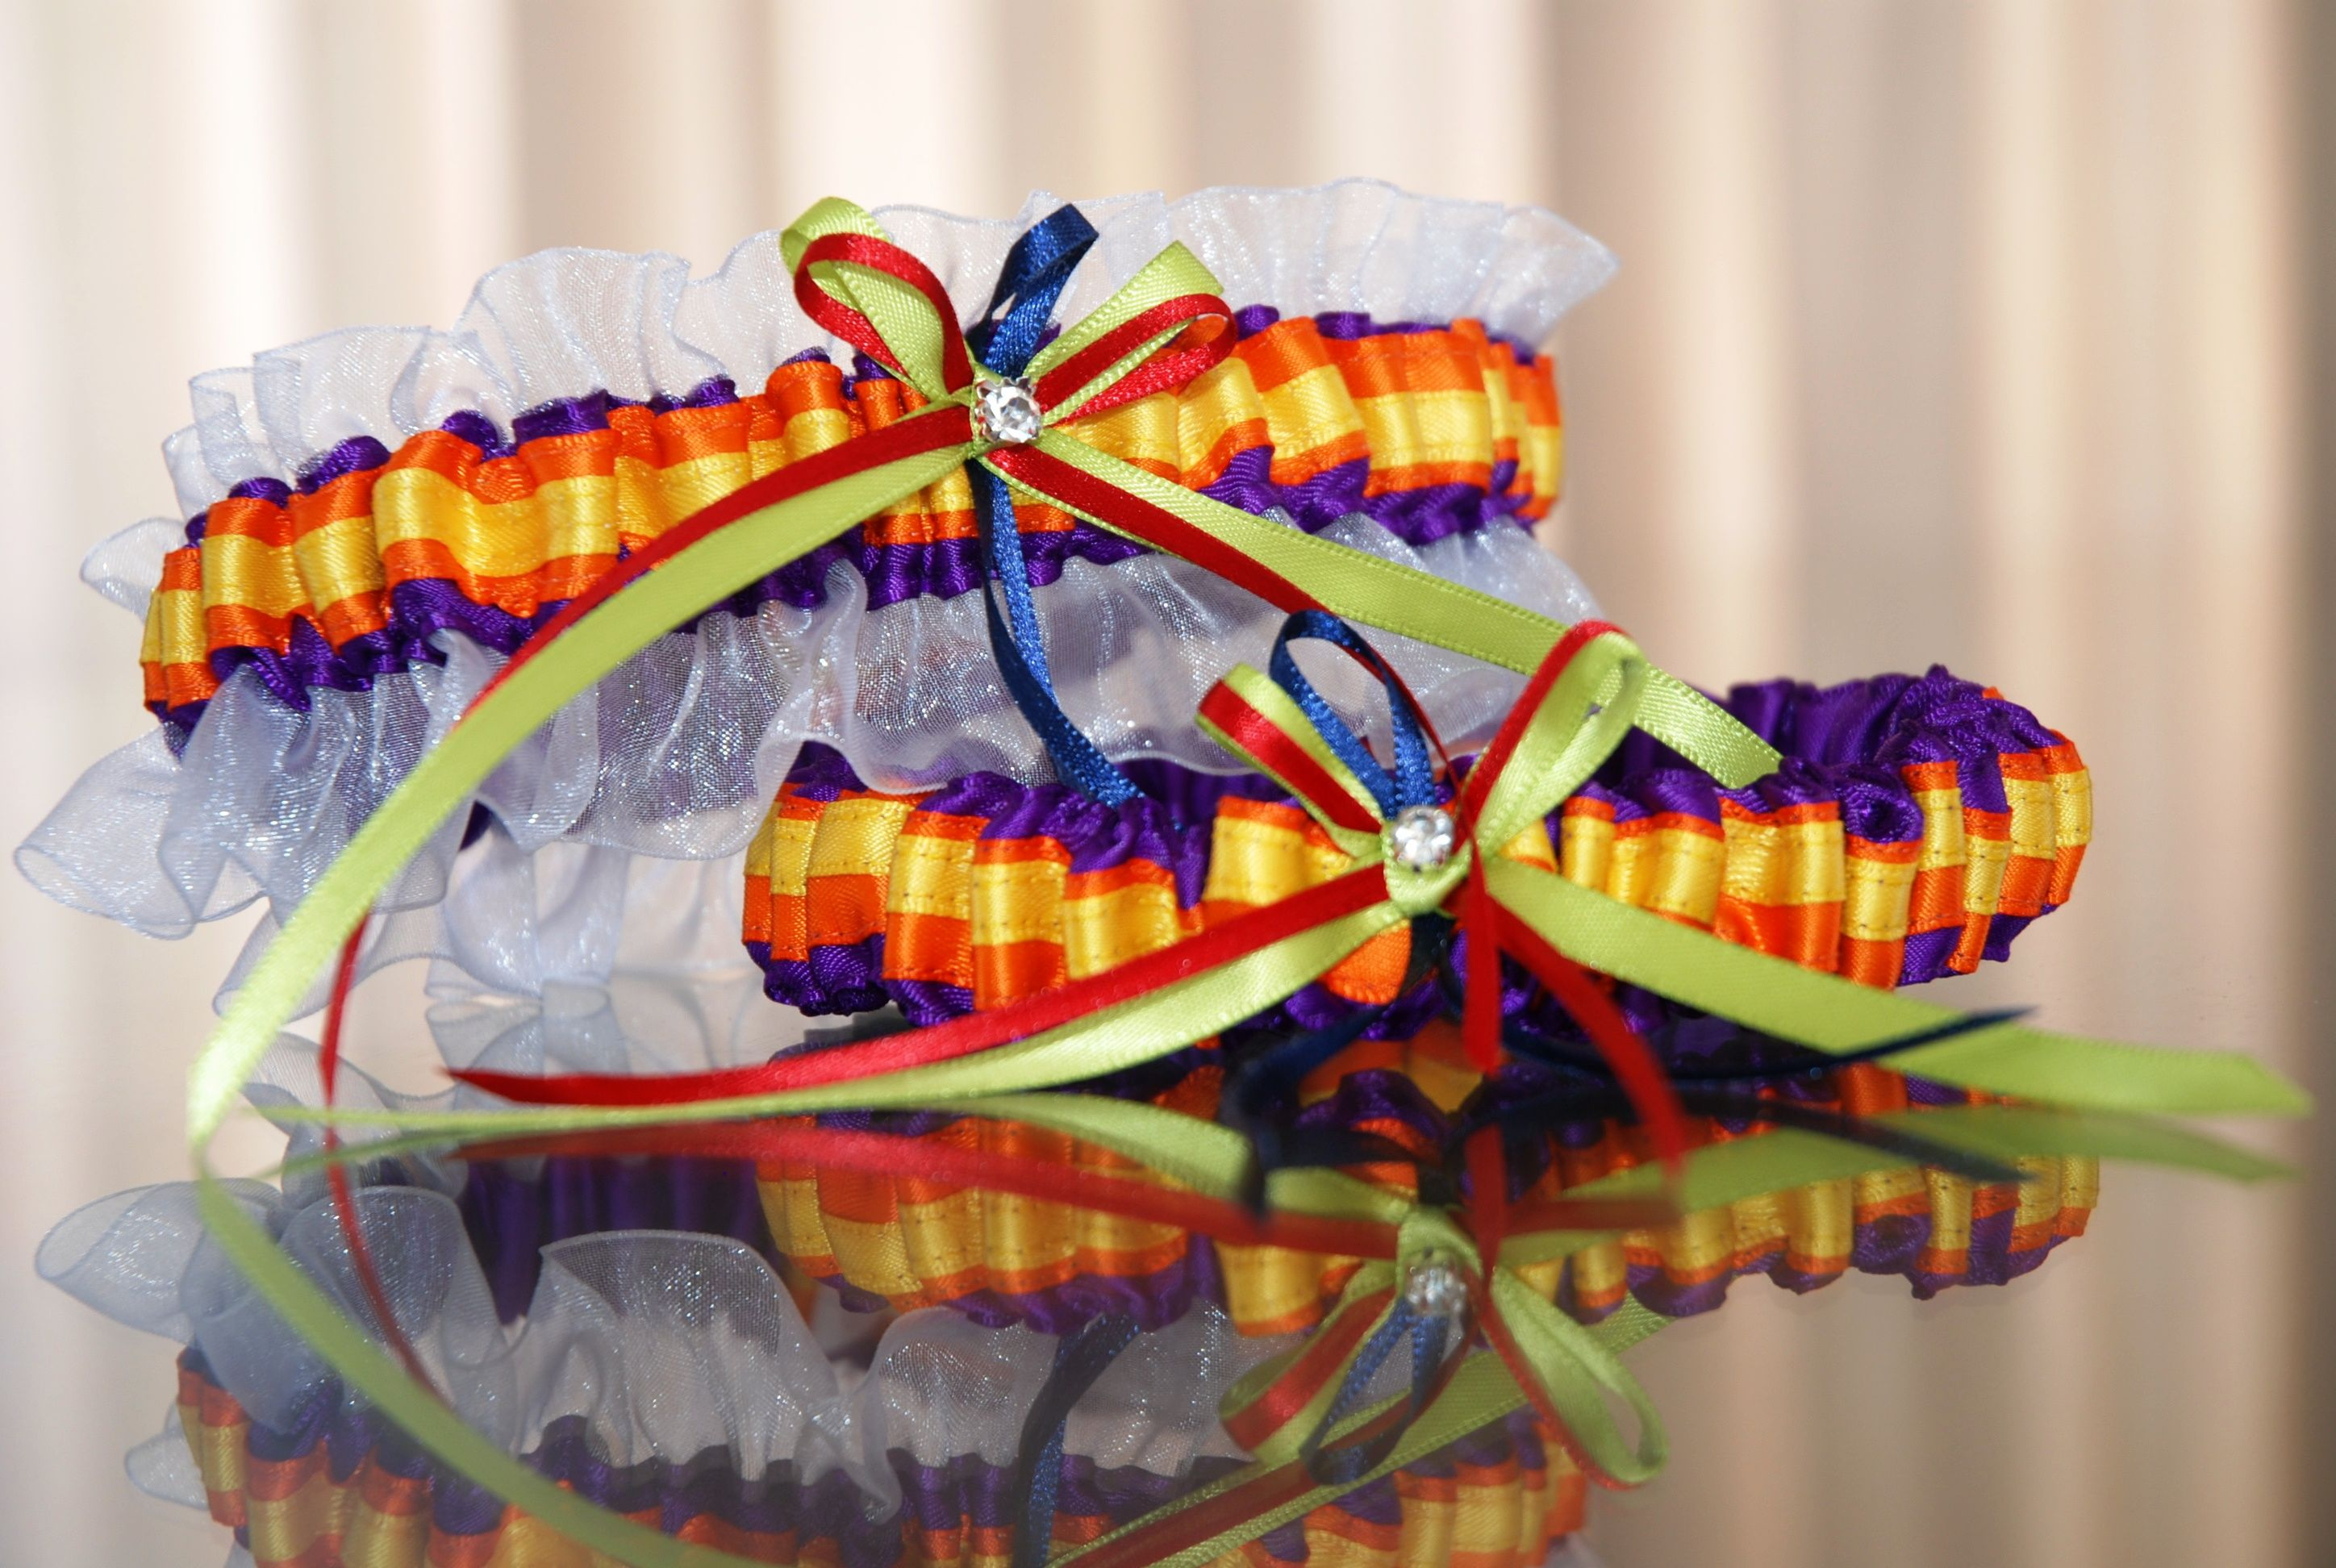 Main garter:  White organza with purple, orange, yellow satin with red blue and green bows. Tossing garter: Purple, orange and yellow lace with red, blue and green bows. louise@heavenlygarters.co.za